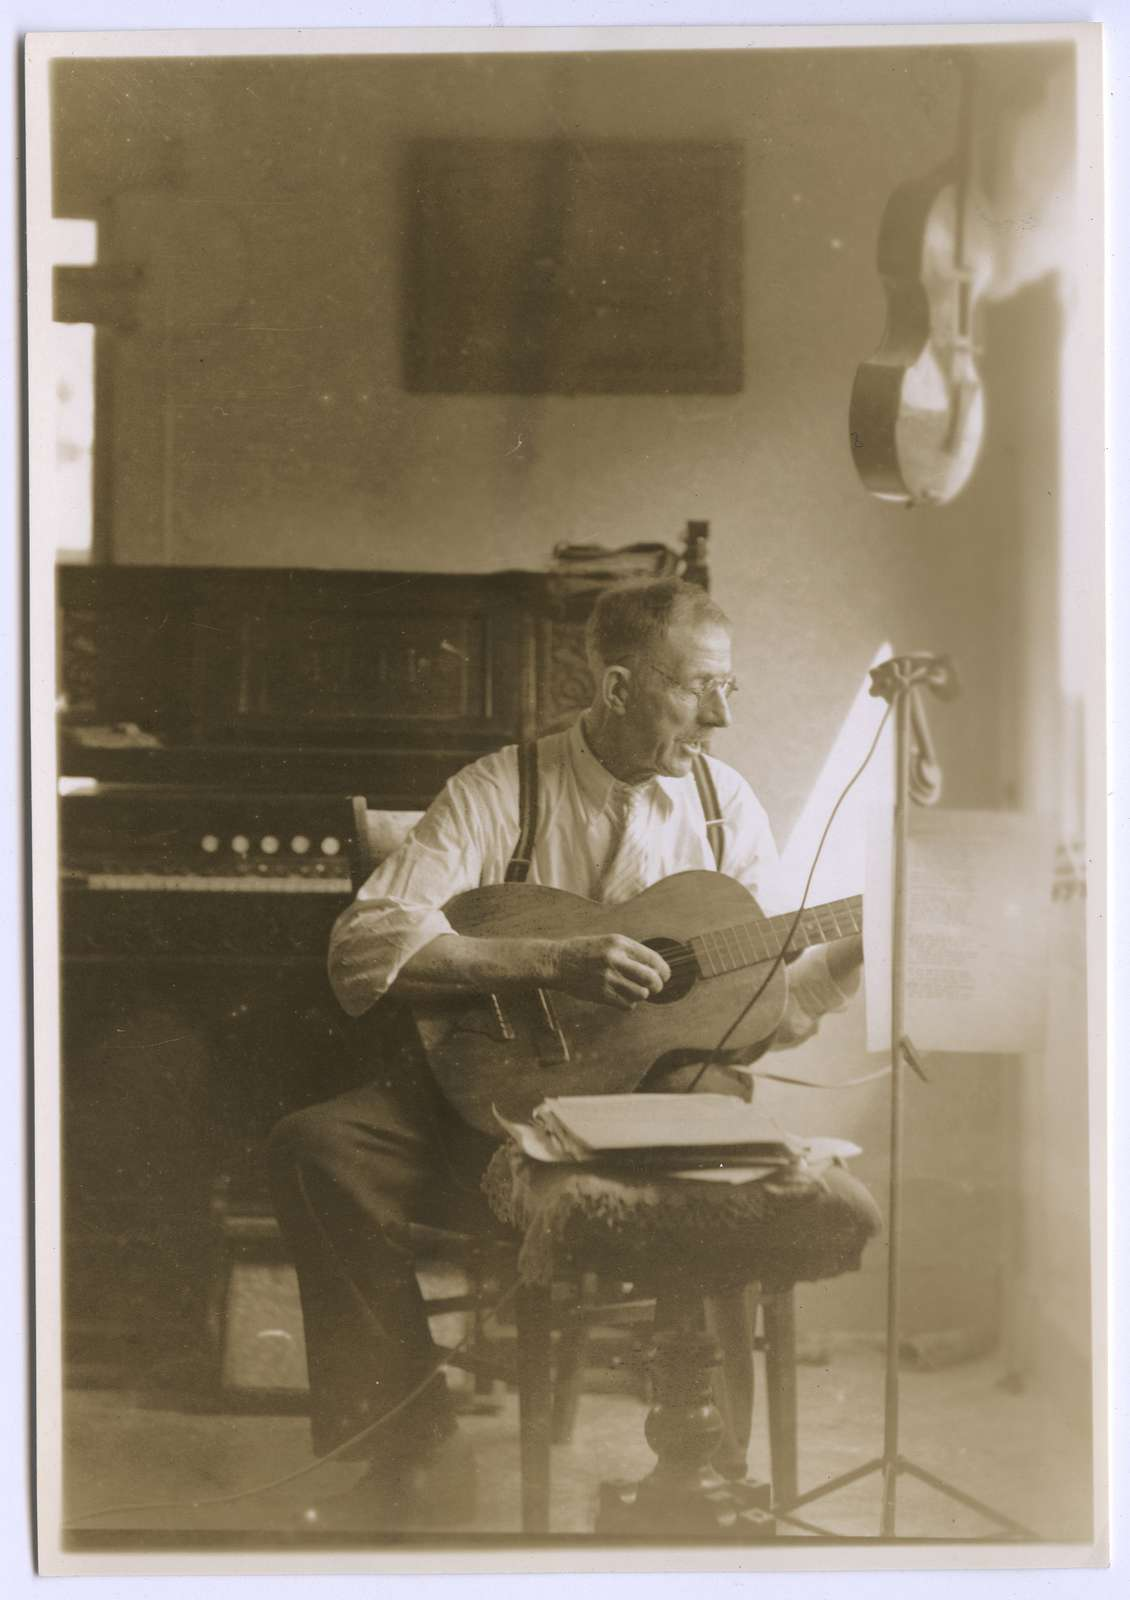 George Vinton Graham with guitar, seated, right profile, looking downwards, portrait, photograph